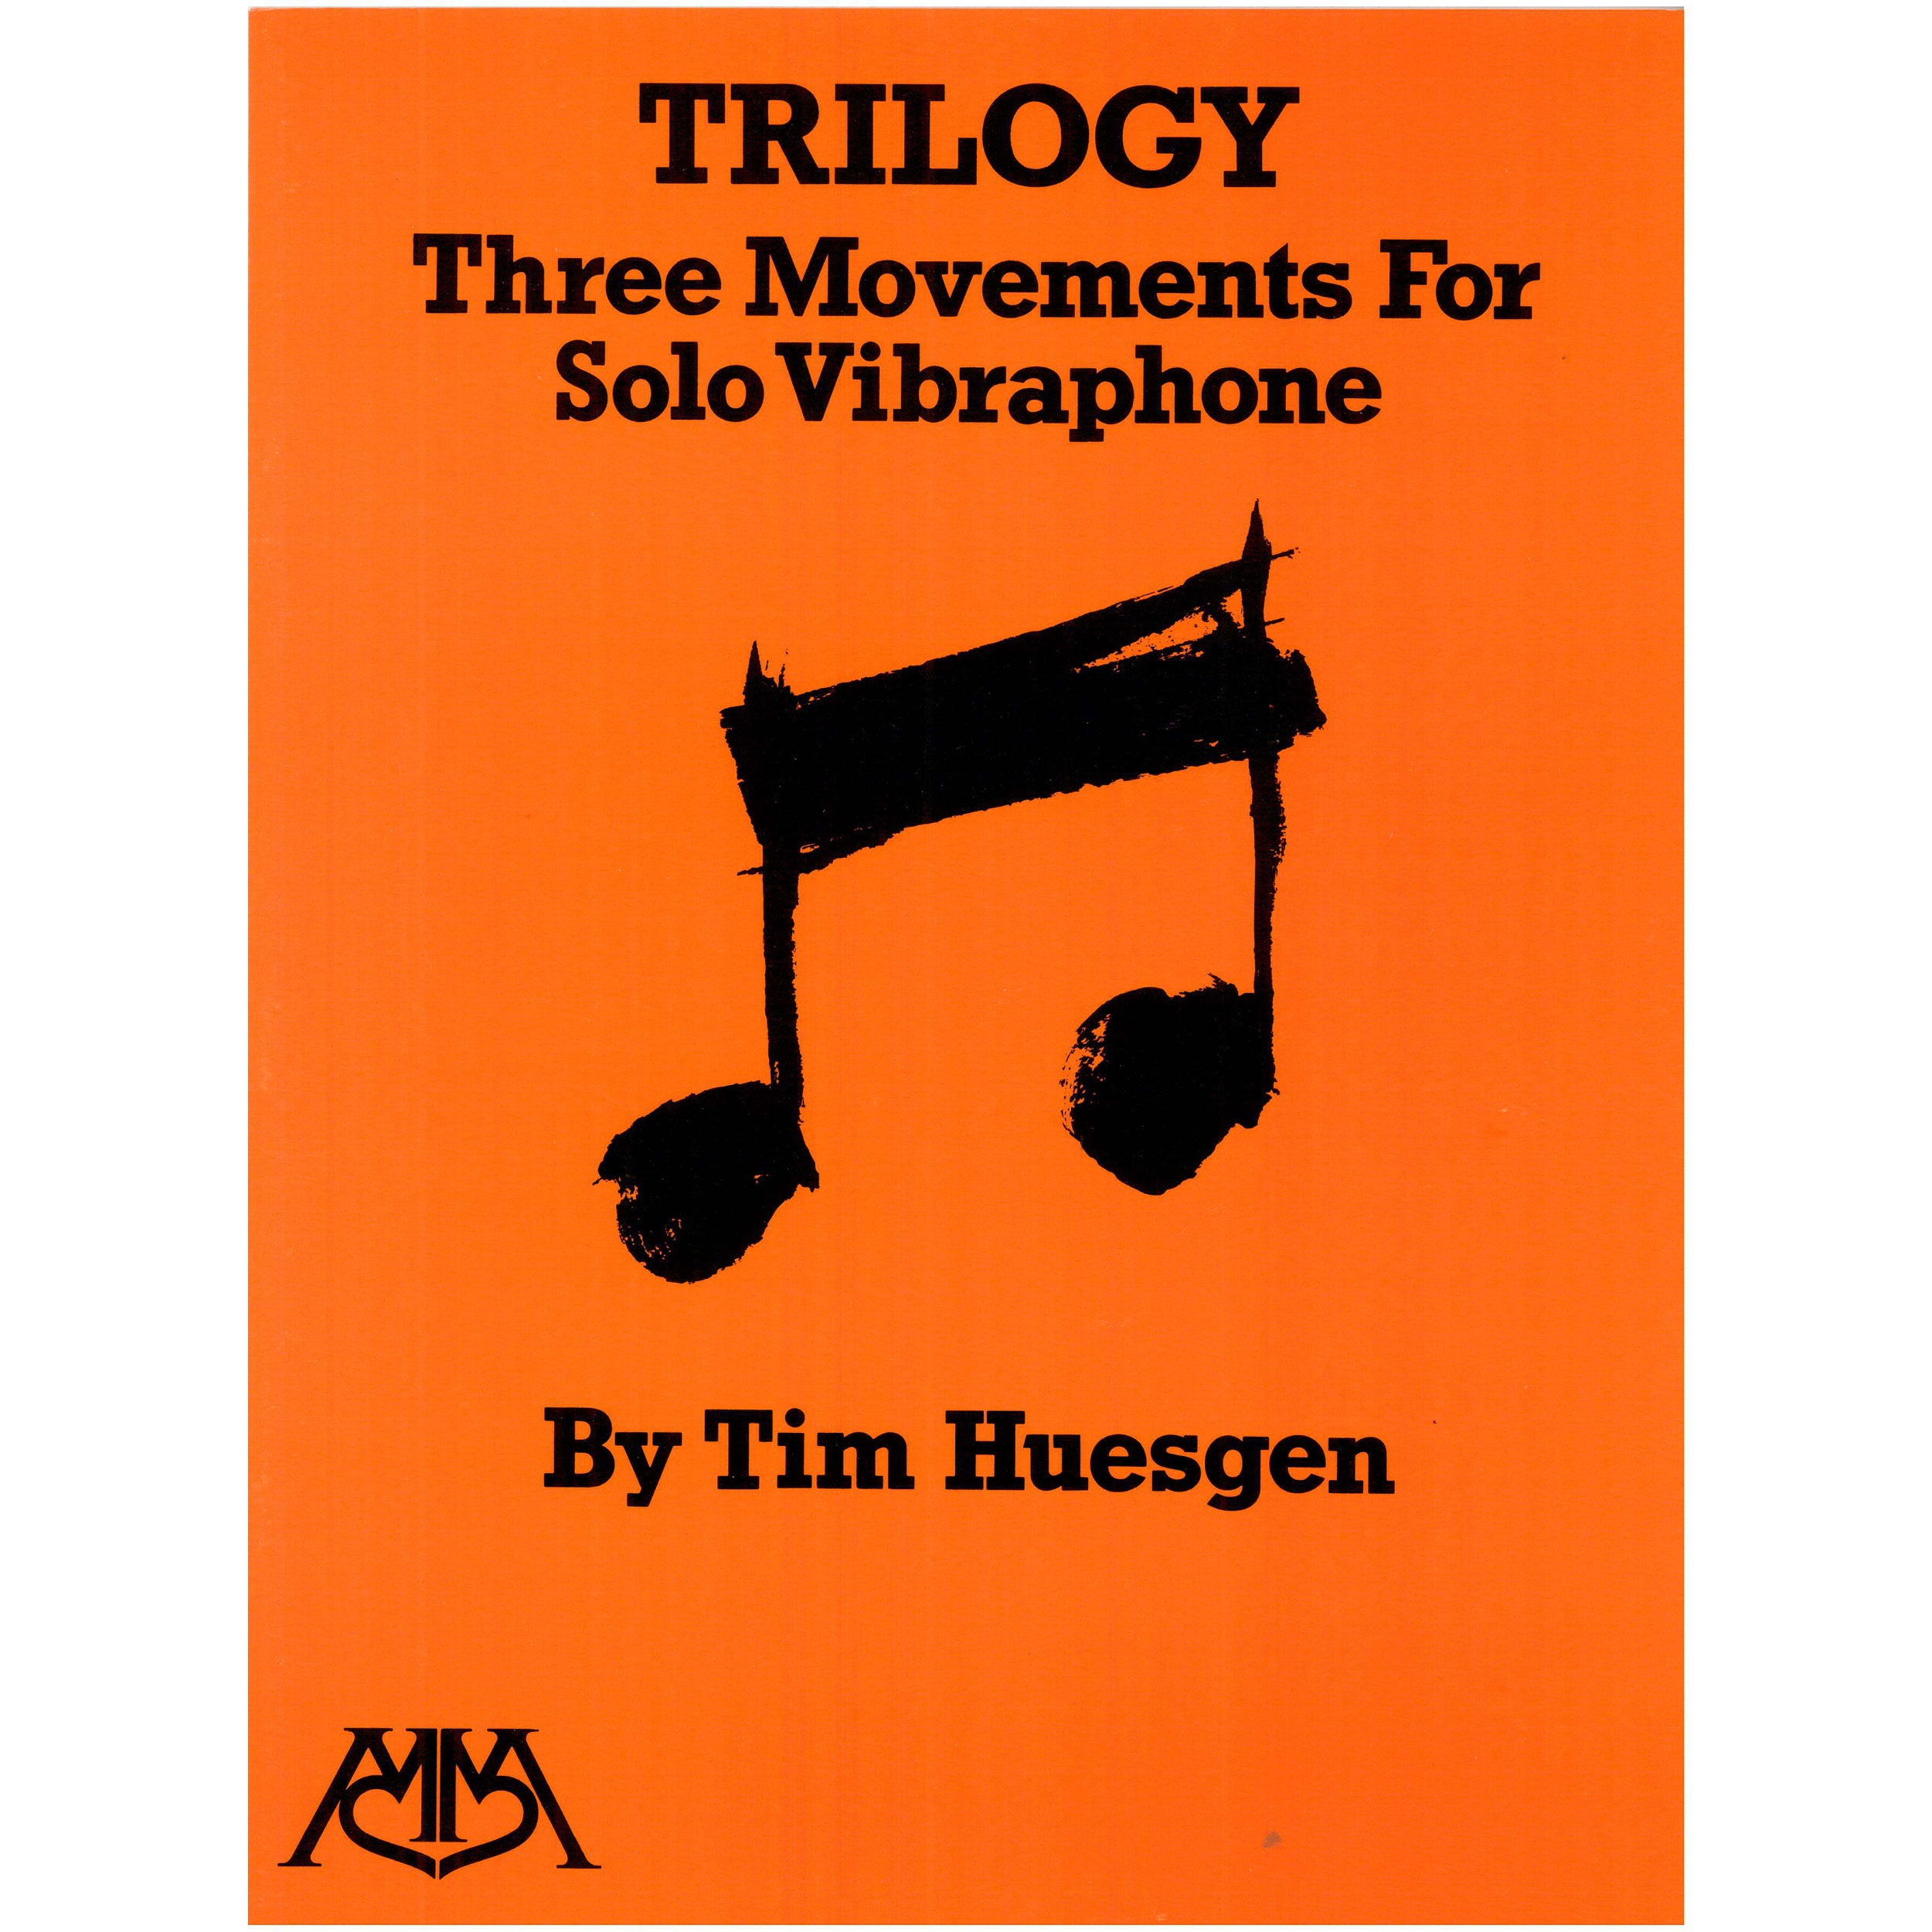 Trilogy: Three Movements for Solo Vibraphone by Tim Huesgen